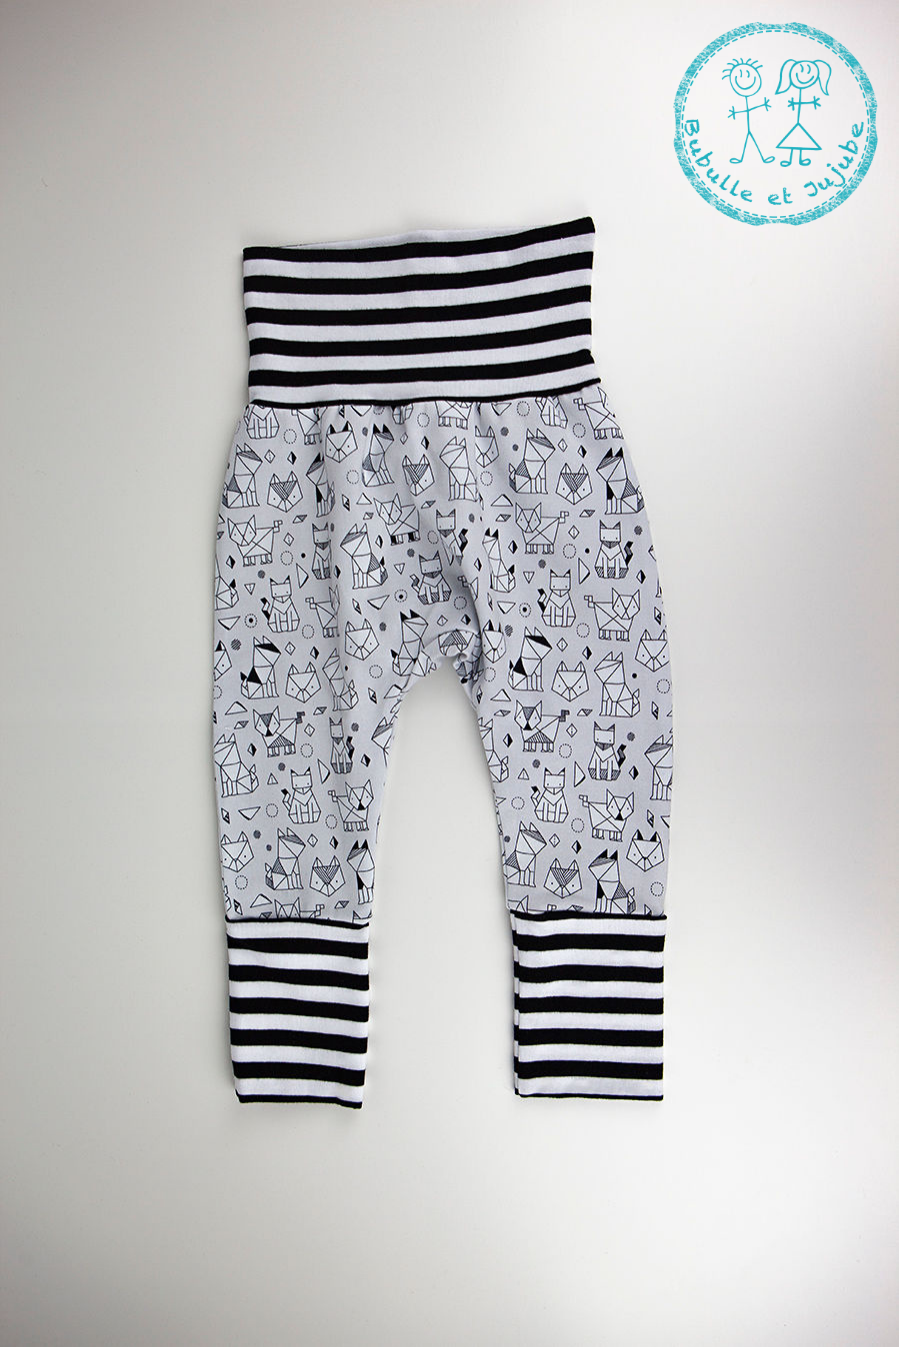 Pantalons évolutifs - Animaux origami / Grow with me pants - Origami animals